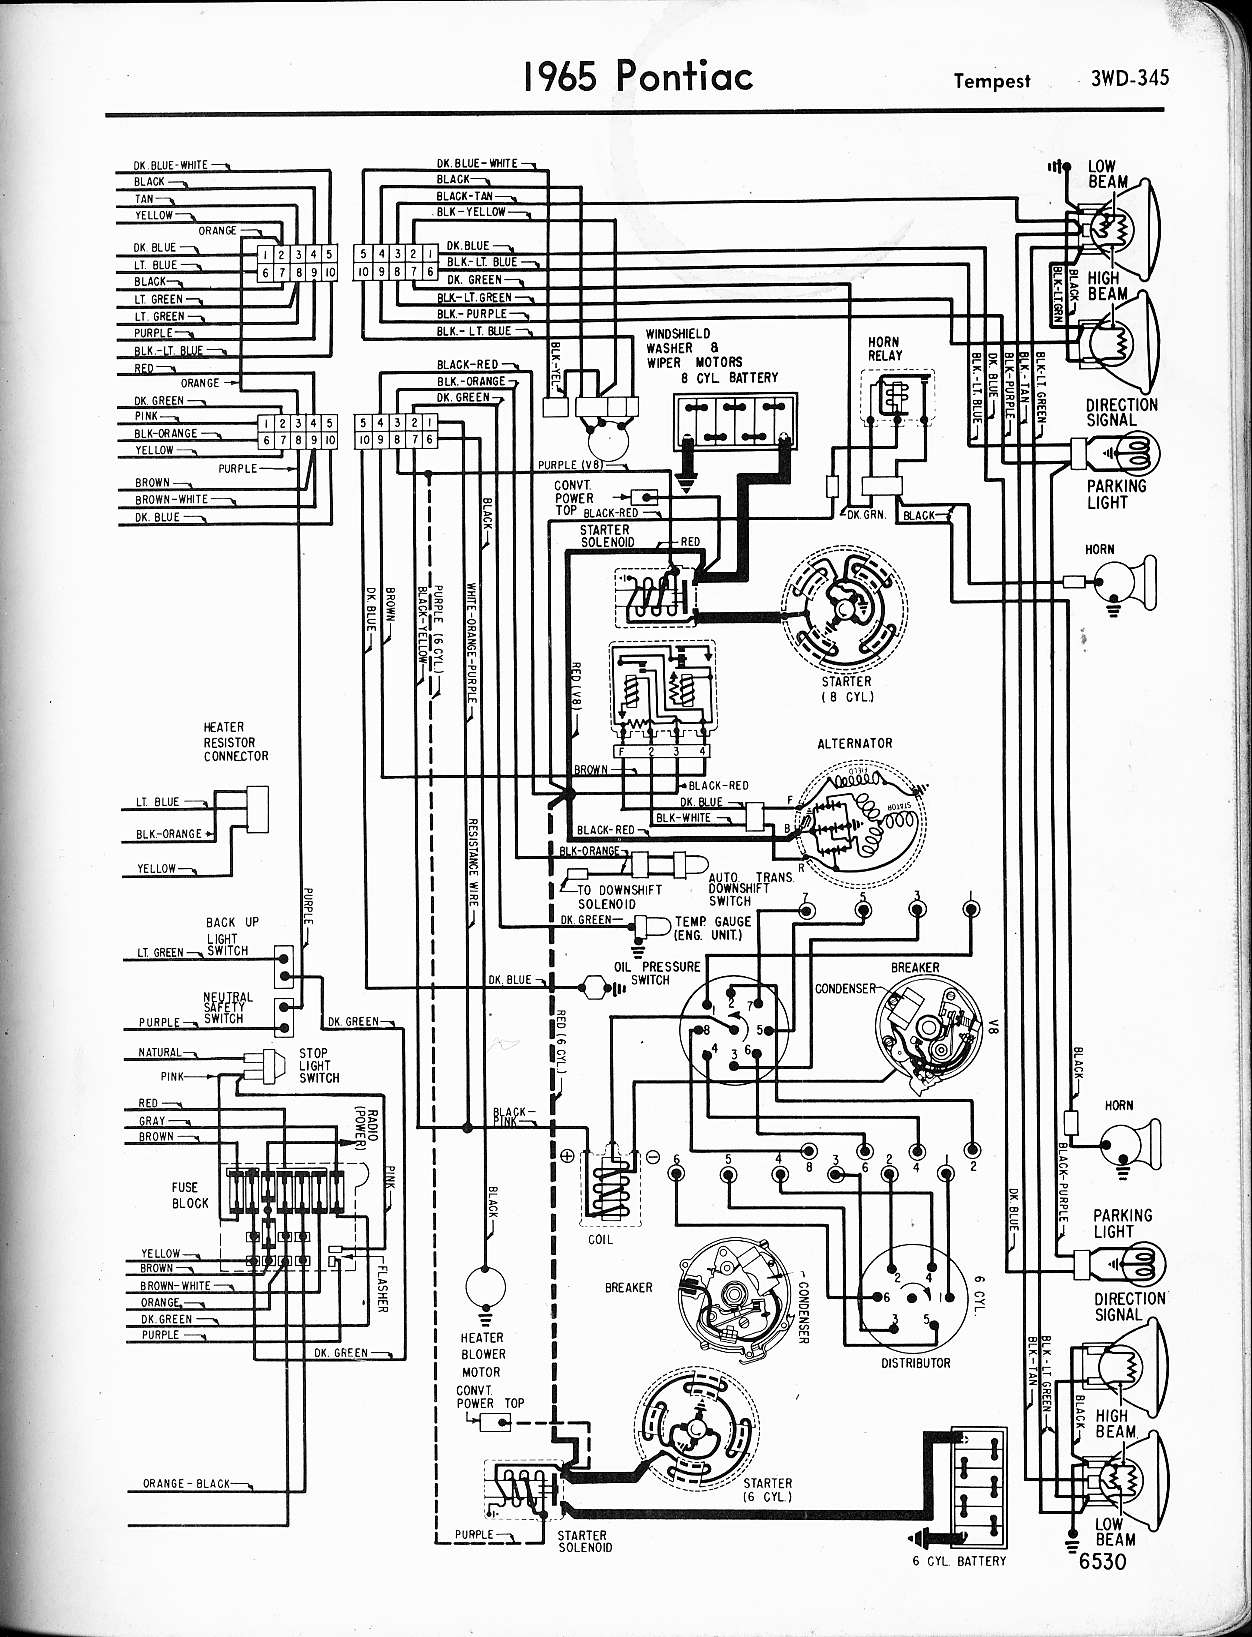 1968 Gto Wiring Diagram Schemes 1973 Camaro Air Conditioning Wallace Racing Diagrams Engine 1965 Tempest Right Page